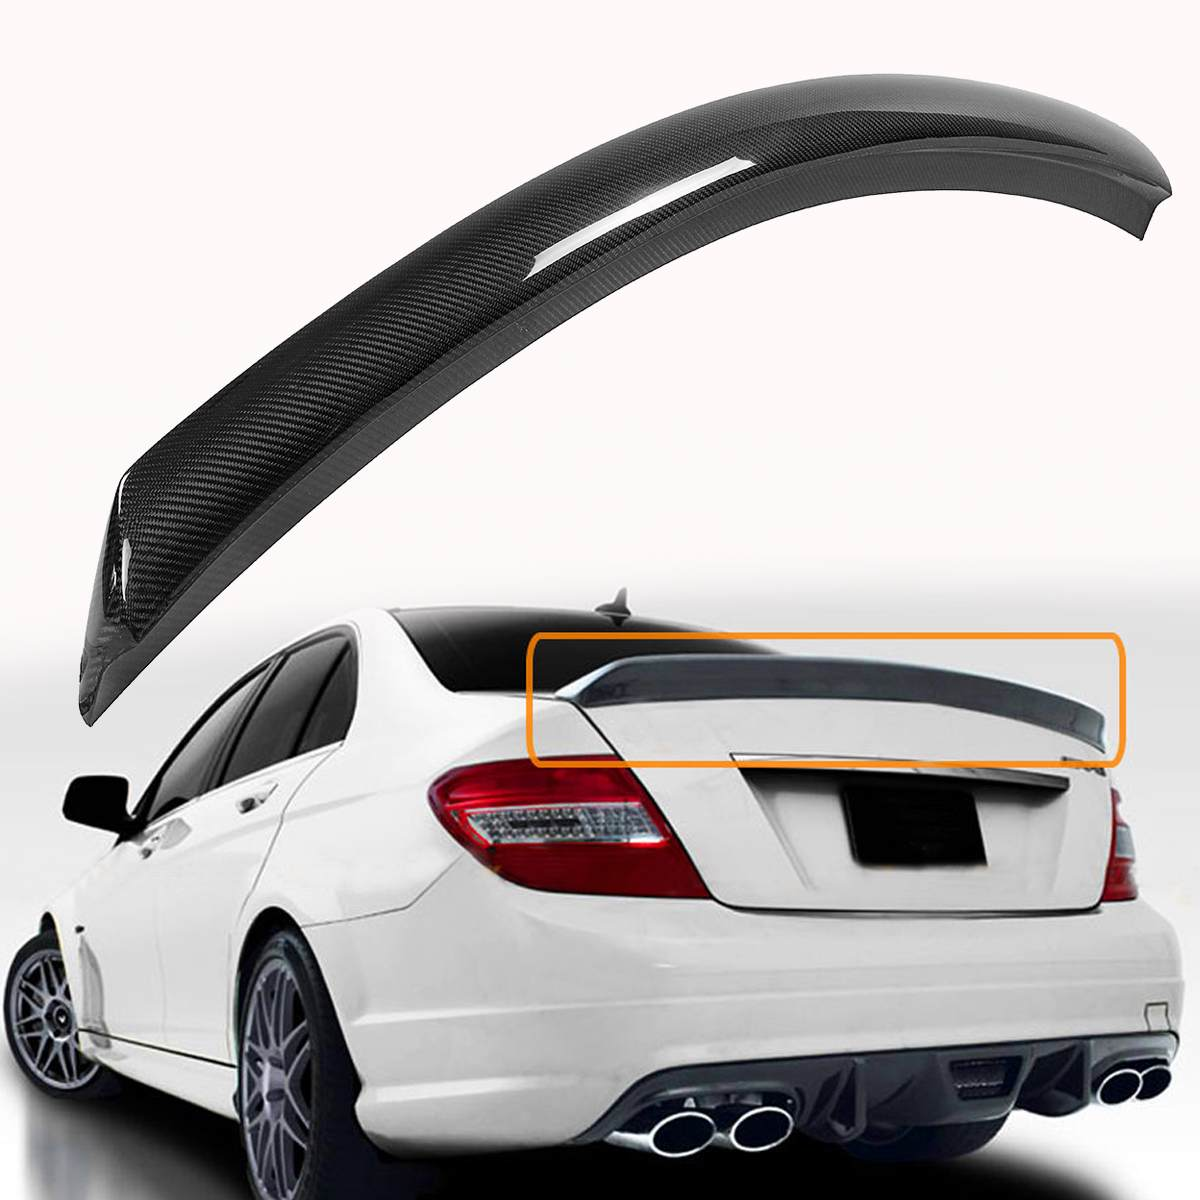 Carbon Fiber AMG Style Trunk Spoiler Wing for 2012-2014 Mercedes R231 SL Class